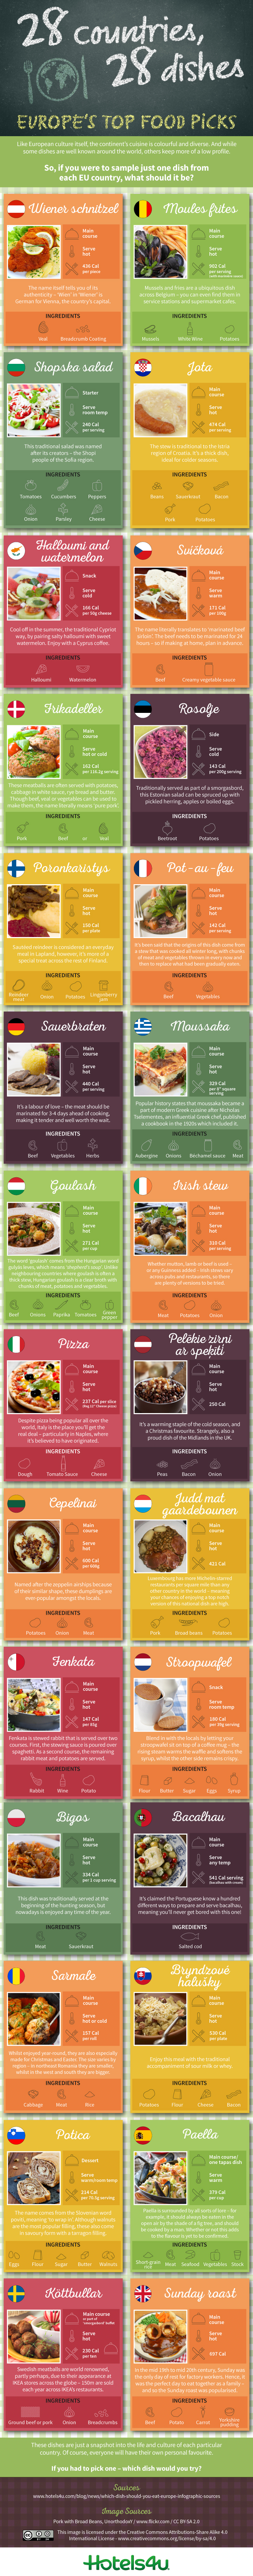 28 countries, 28 dishes – Europe's top food picks [Infographic]